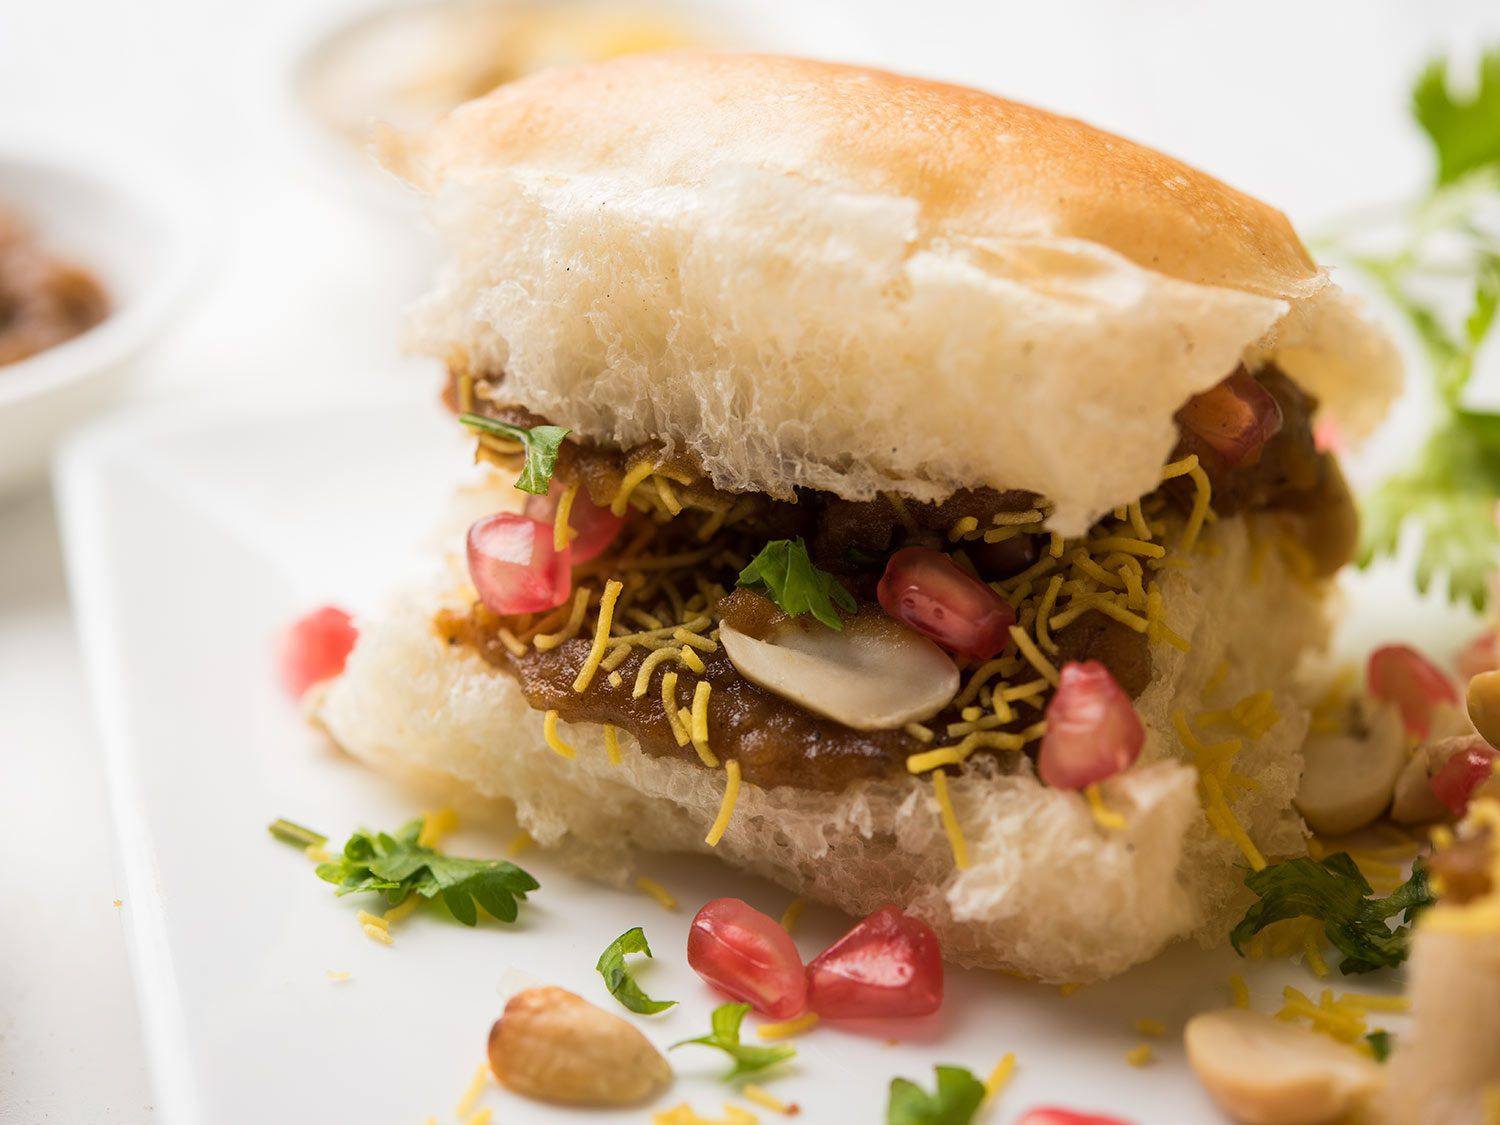 Dabeli: spiced potato mixture with chopped onions, coriander, coconut, peanuts, and pomegranate seeds in a soft white bun.